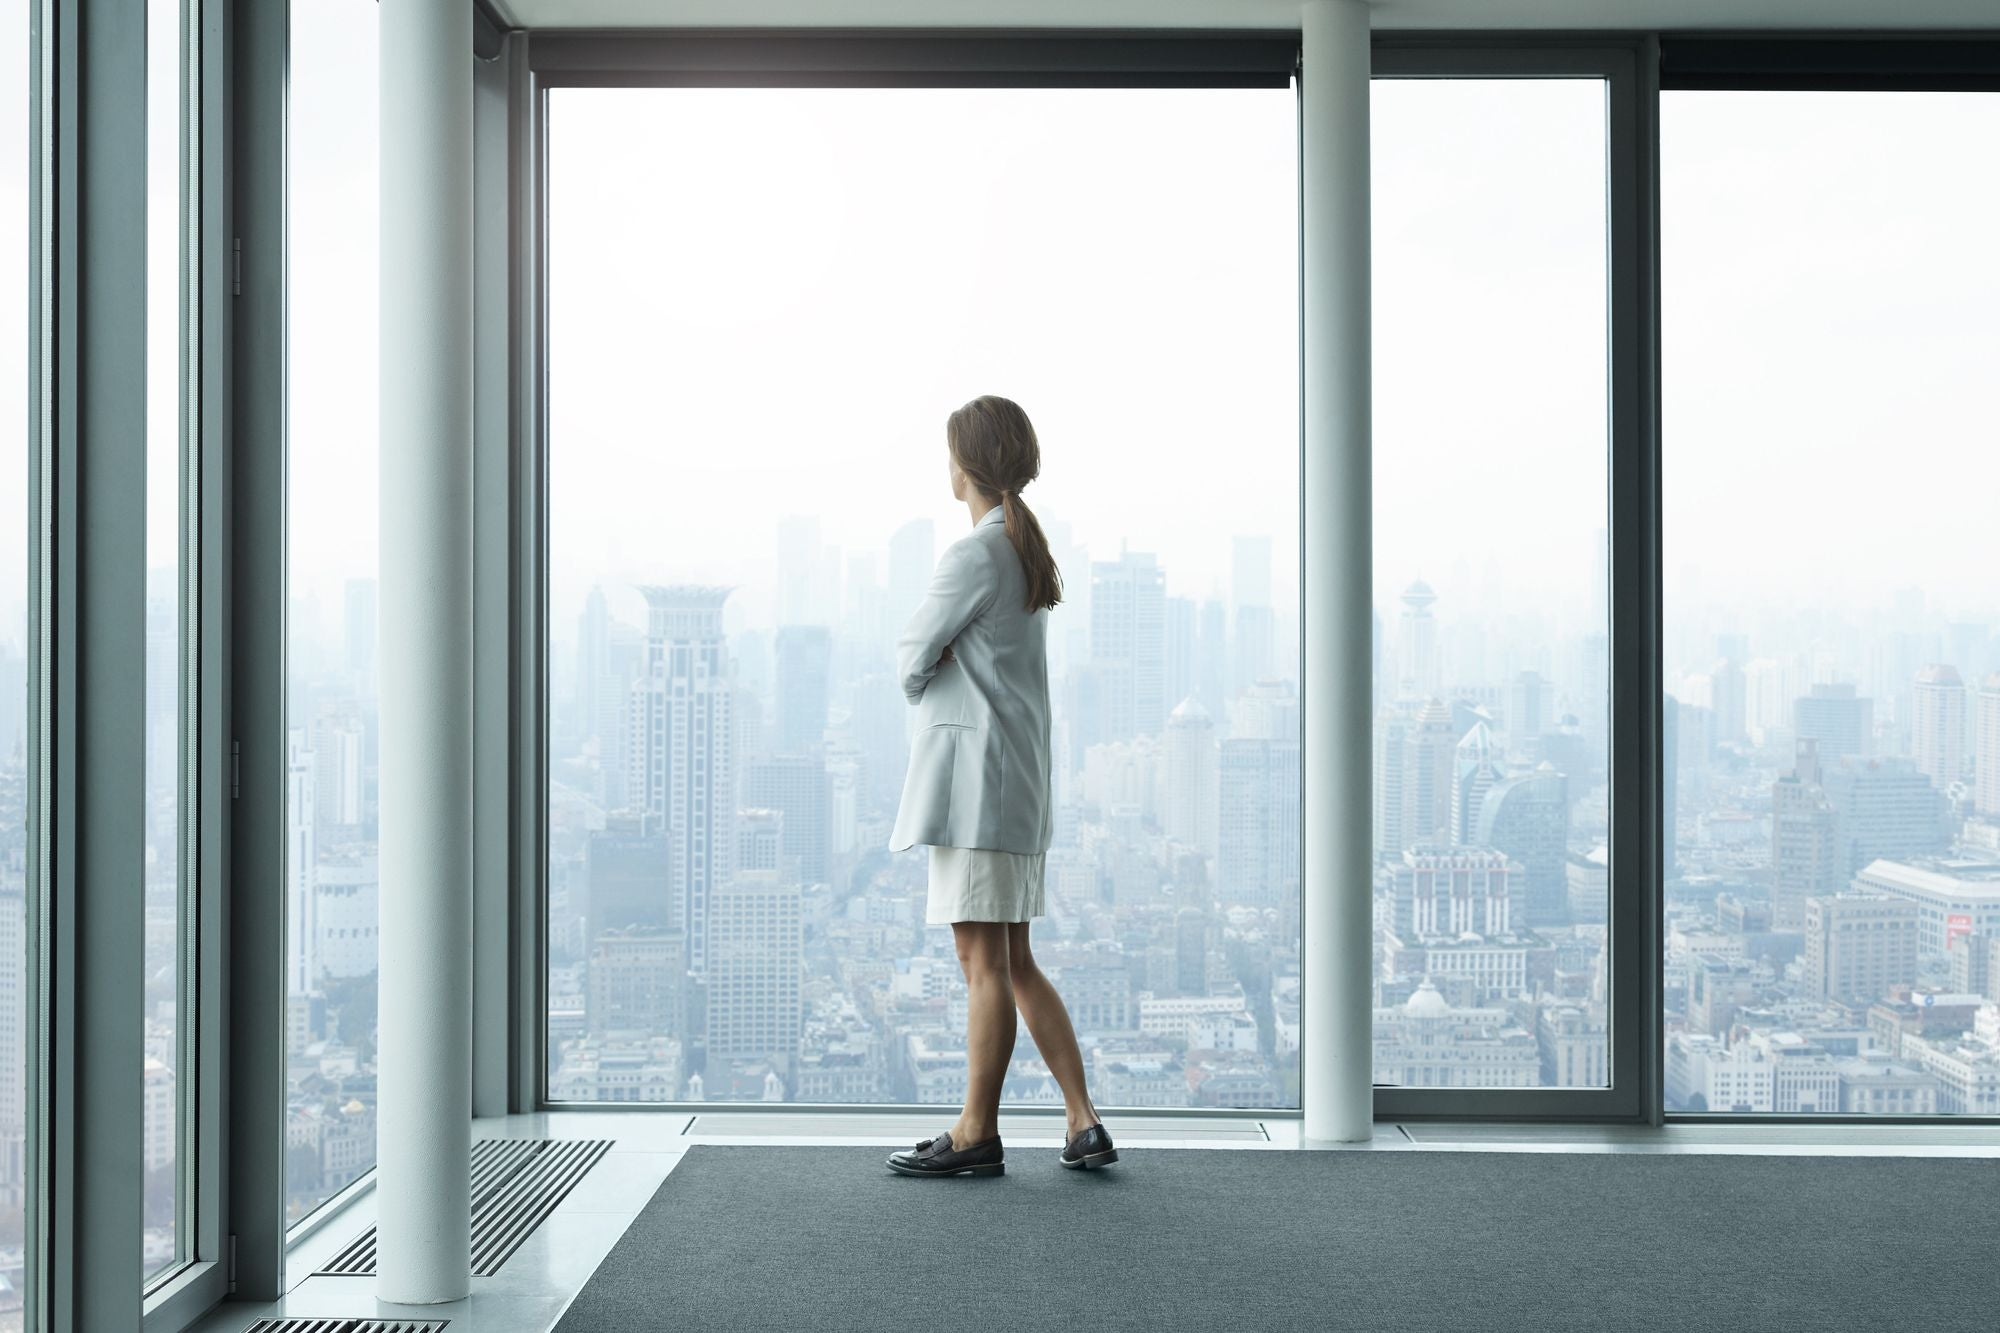 3 Lessons for First-Time CEOs From Someone Who's Been There